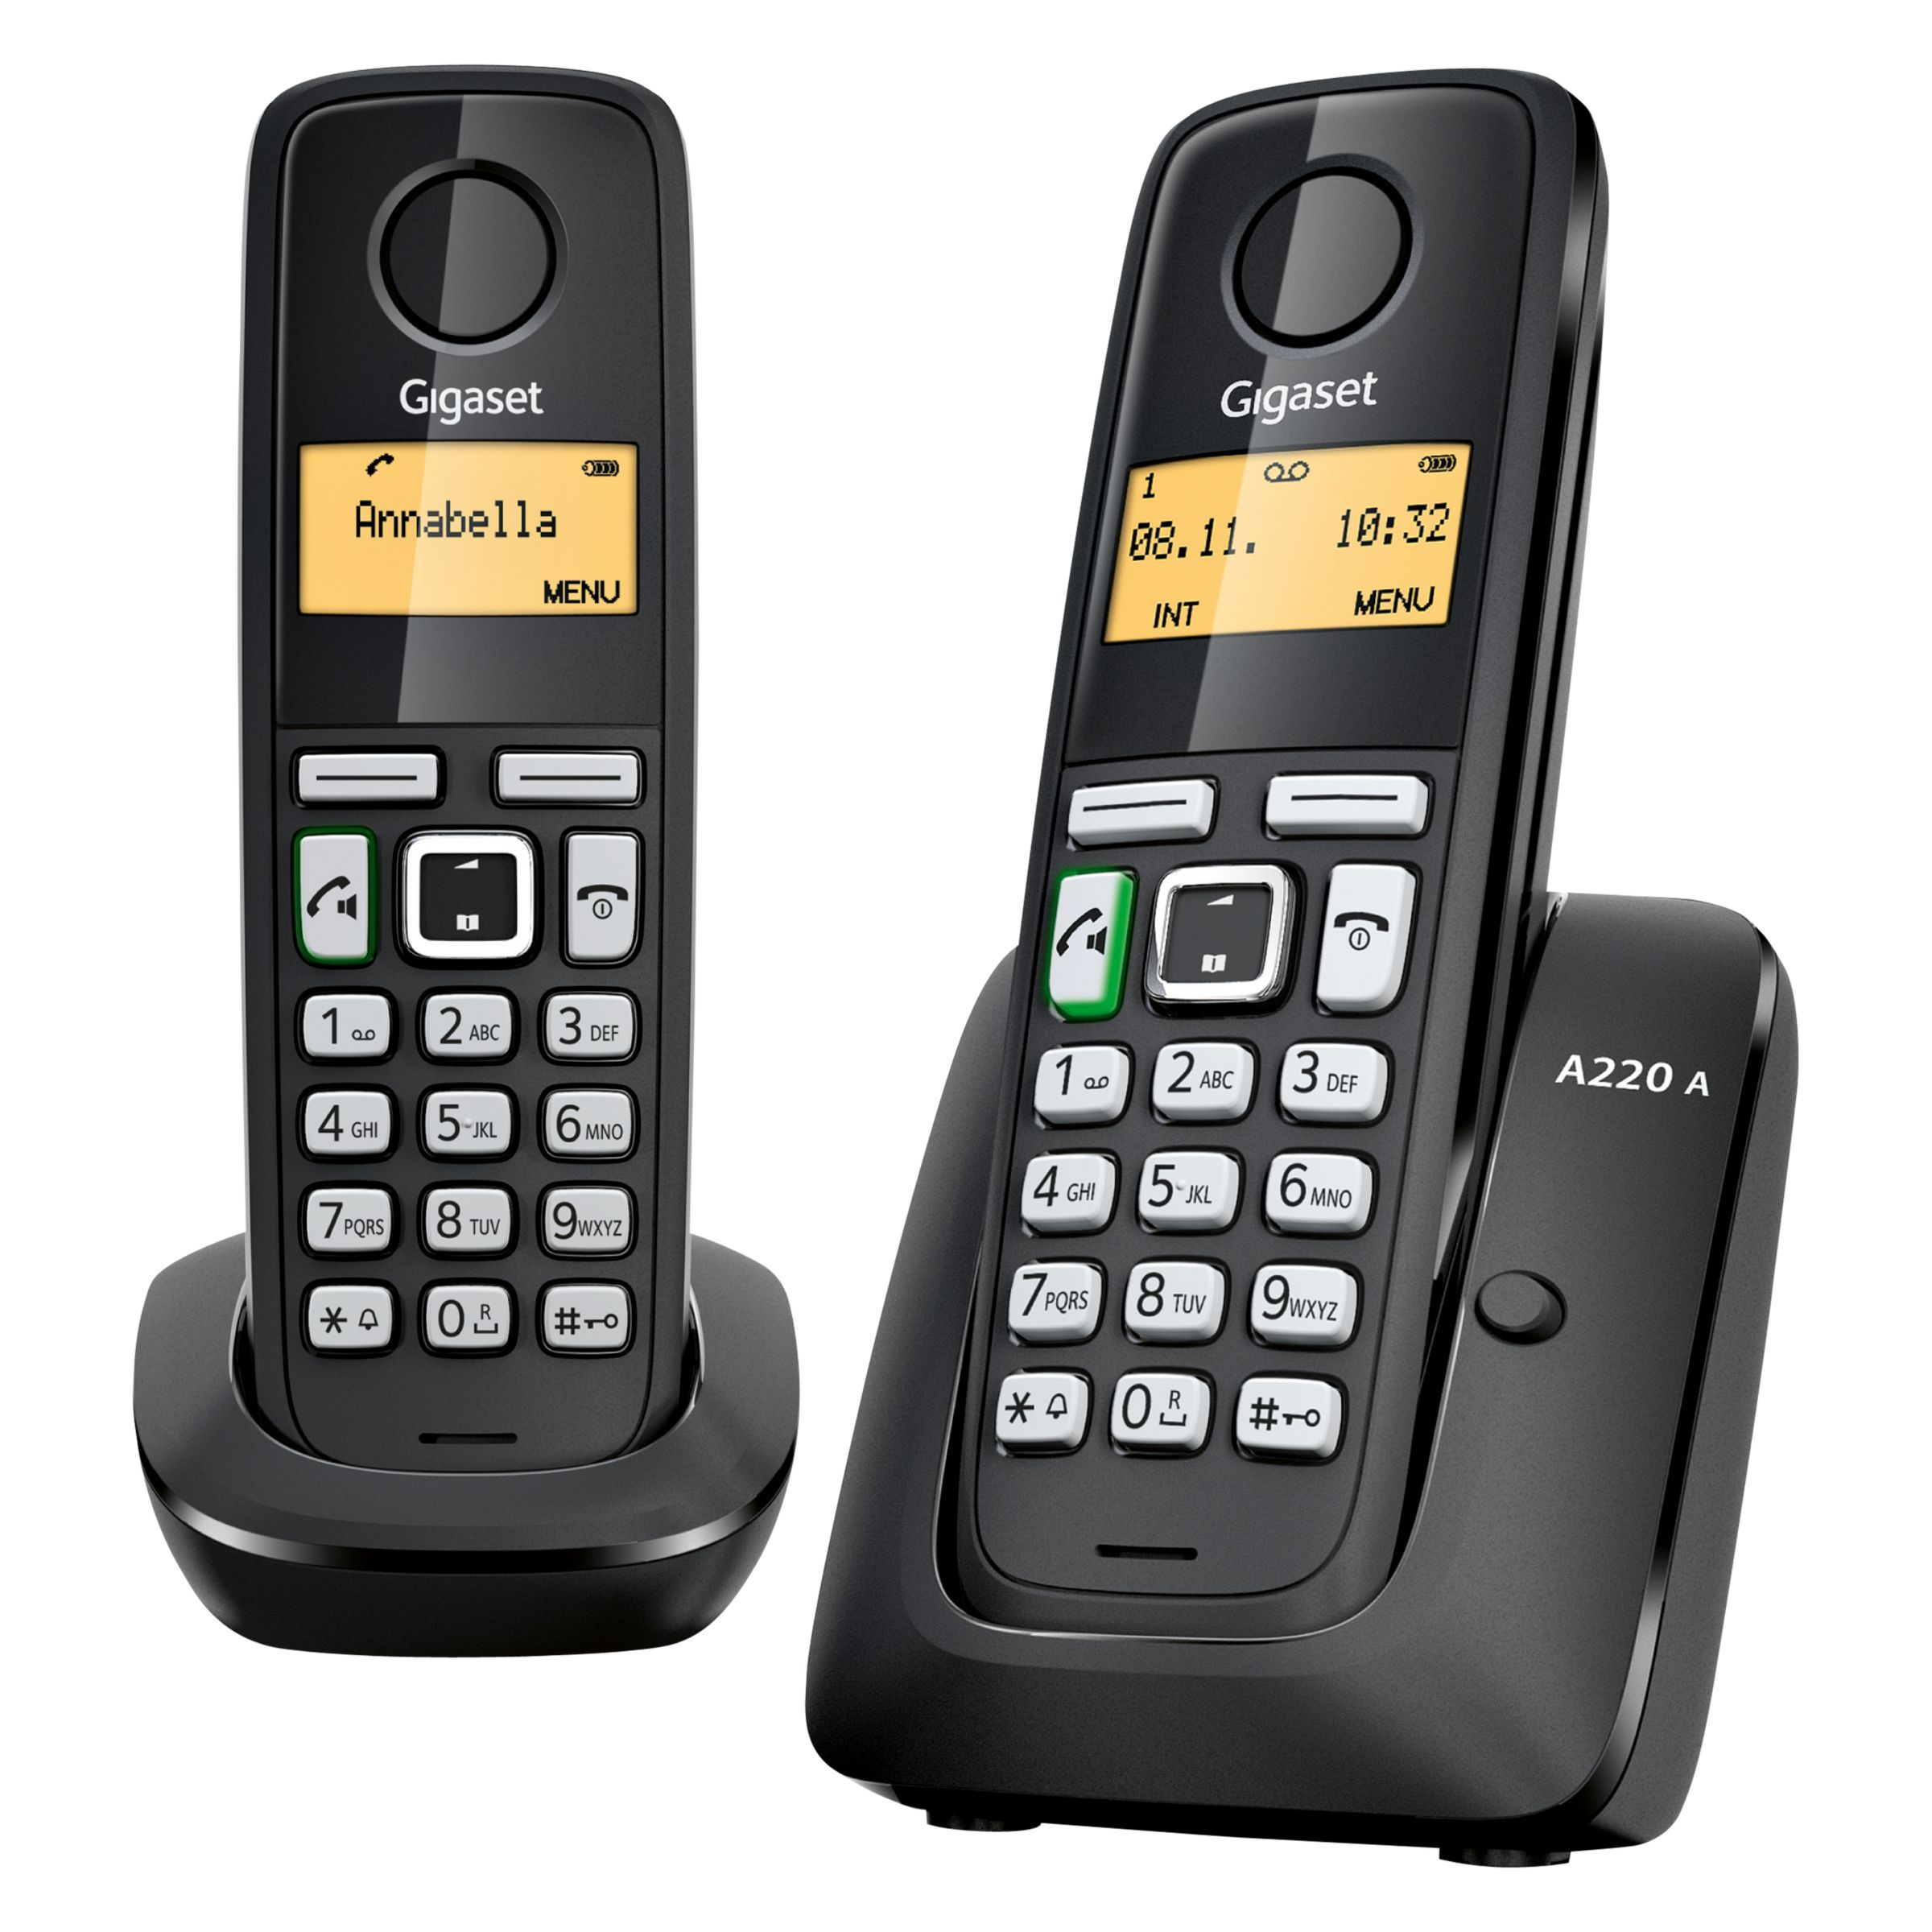 Gigaset Gigaset A220A Digital Cordless Telephone with Answering Machine, Duo DECT, Black